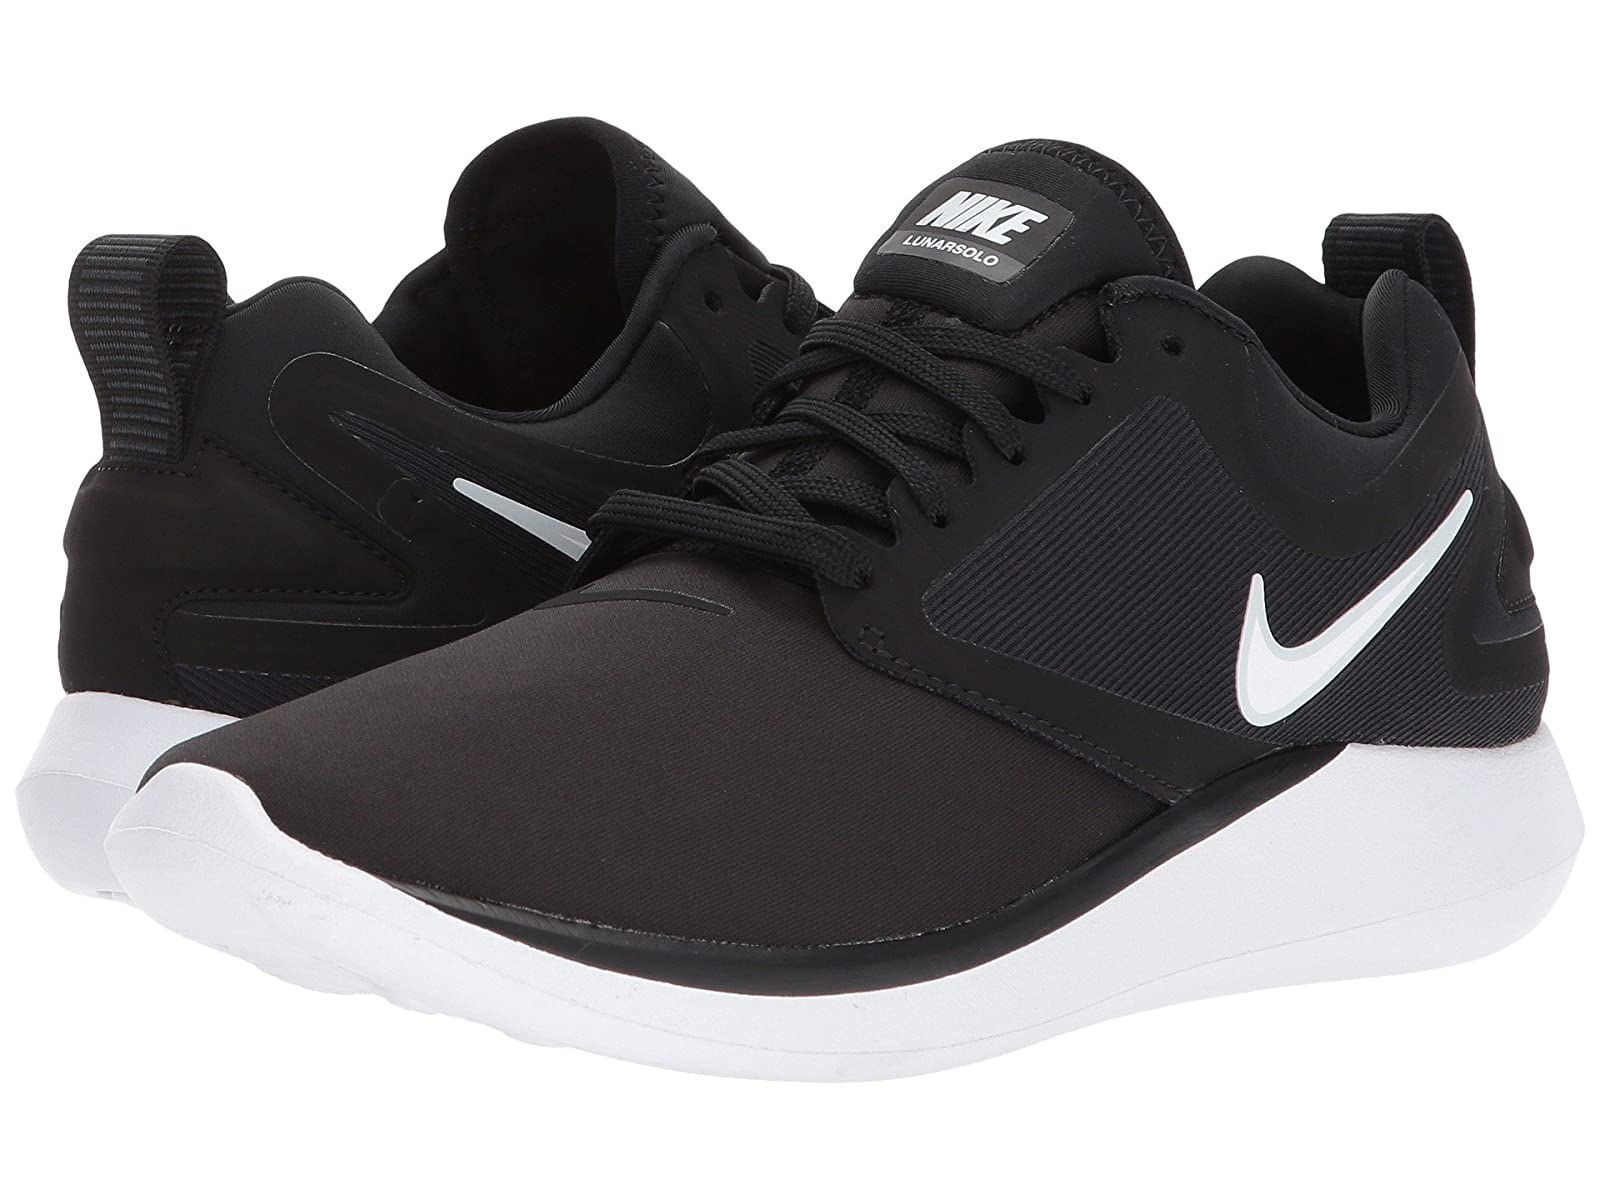 Nike LunarSoloAtmospheric grades have affordable shoes